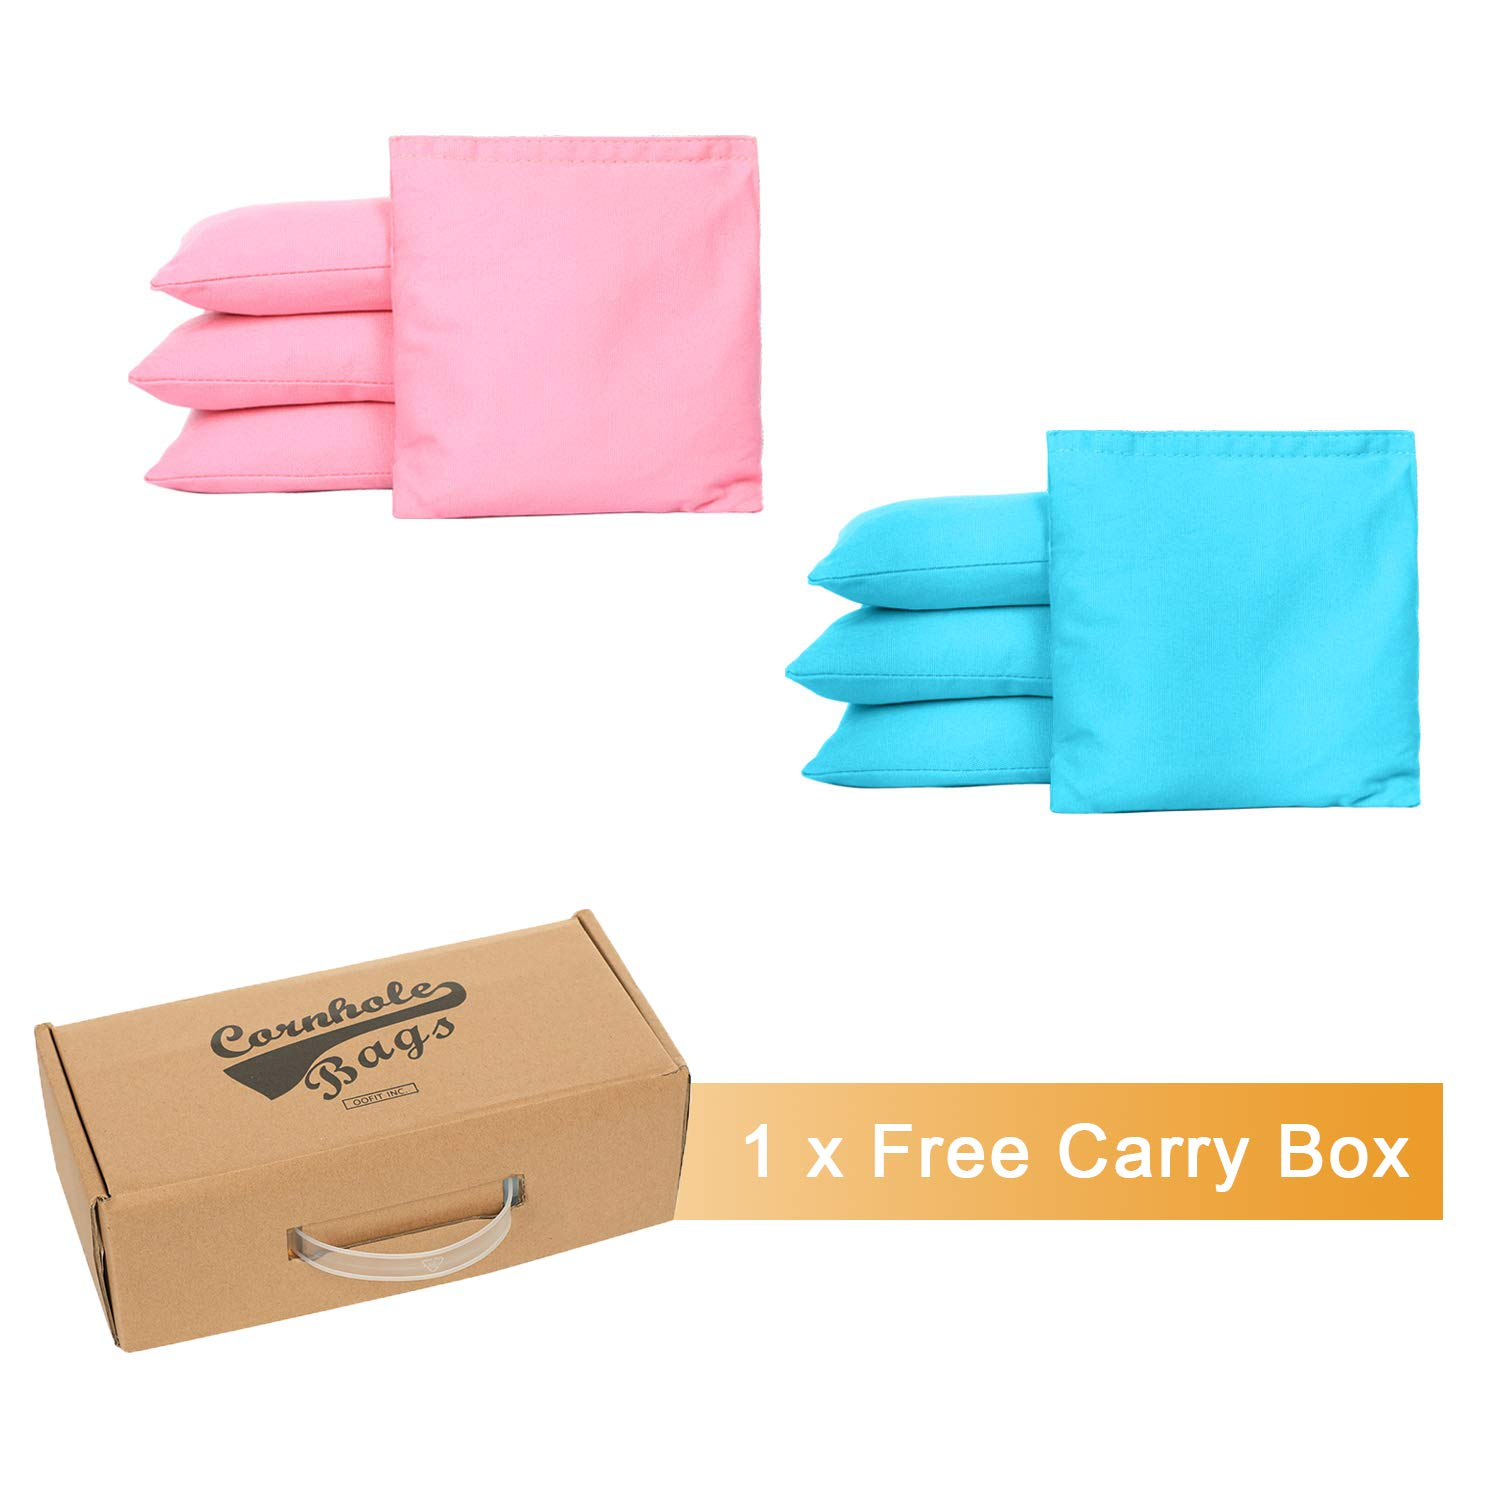 OOFIT Cornhole Bean Bags Set of 8 Weather Resistant for Tossing Corn Hole Game with Carrying Box (Pink, Blue)